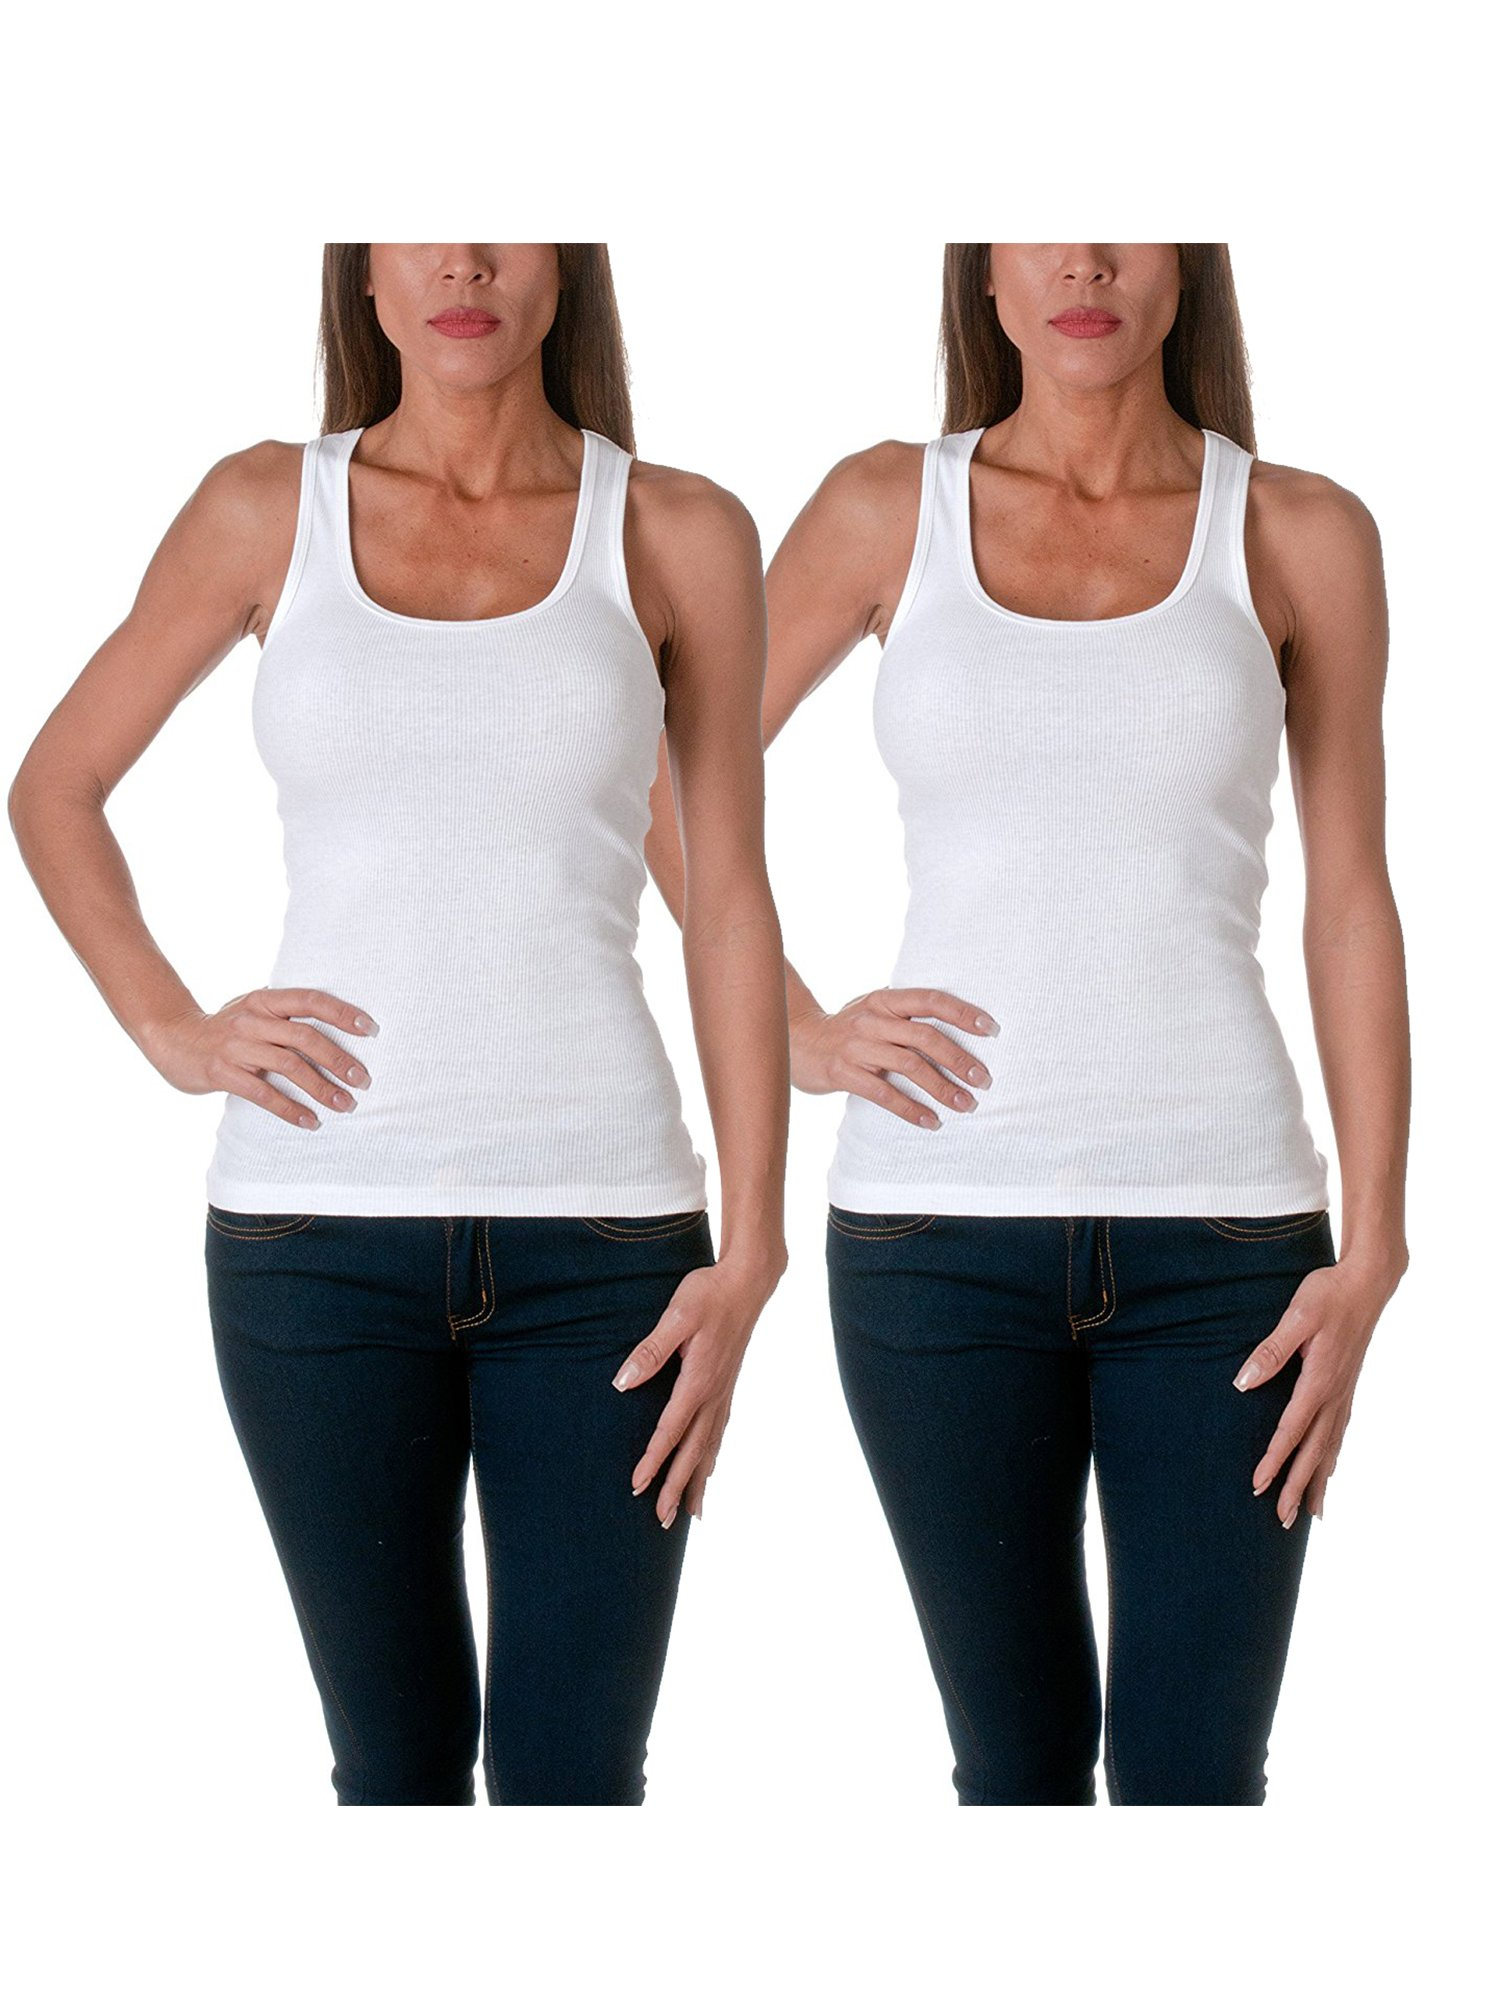 Sofra Women's Tank Top Cotton Ribbed 2 Pack Deal(White/White-S)